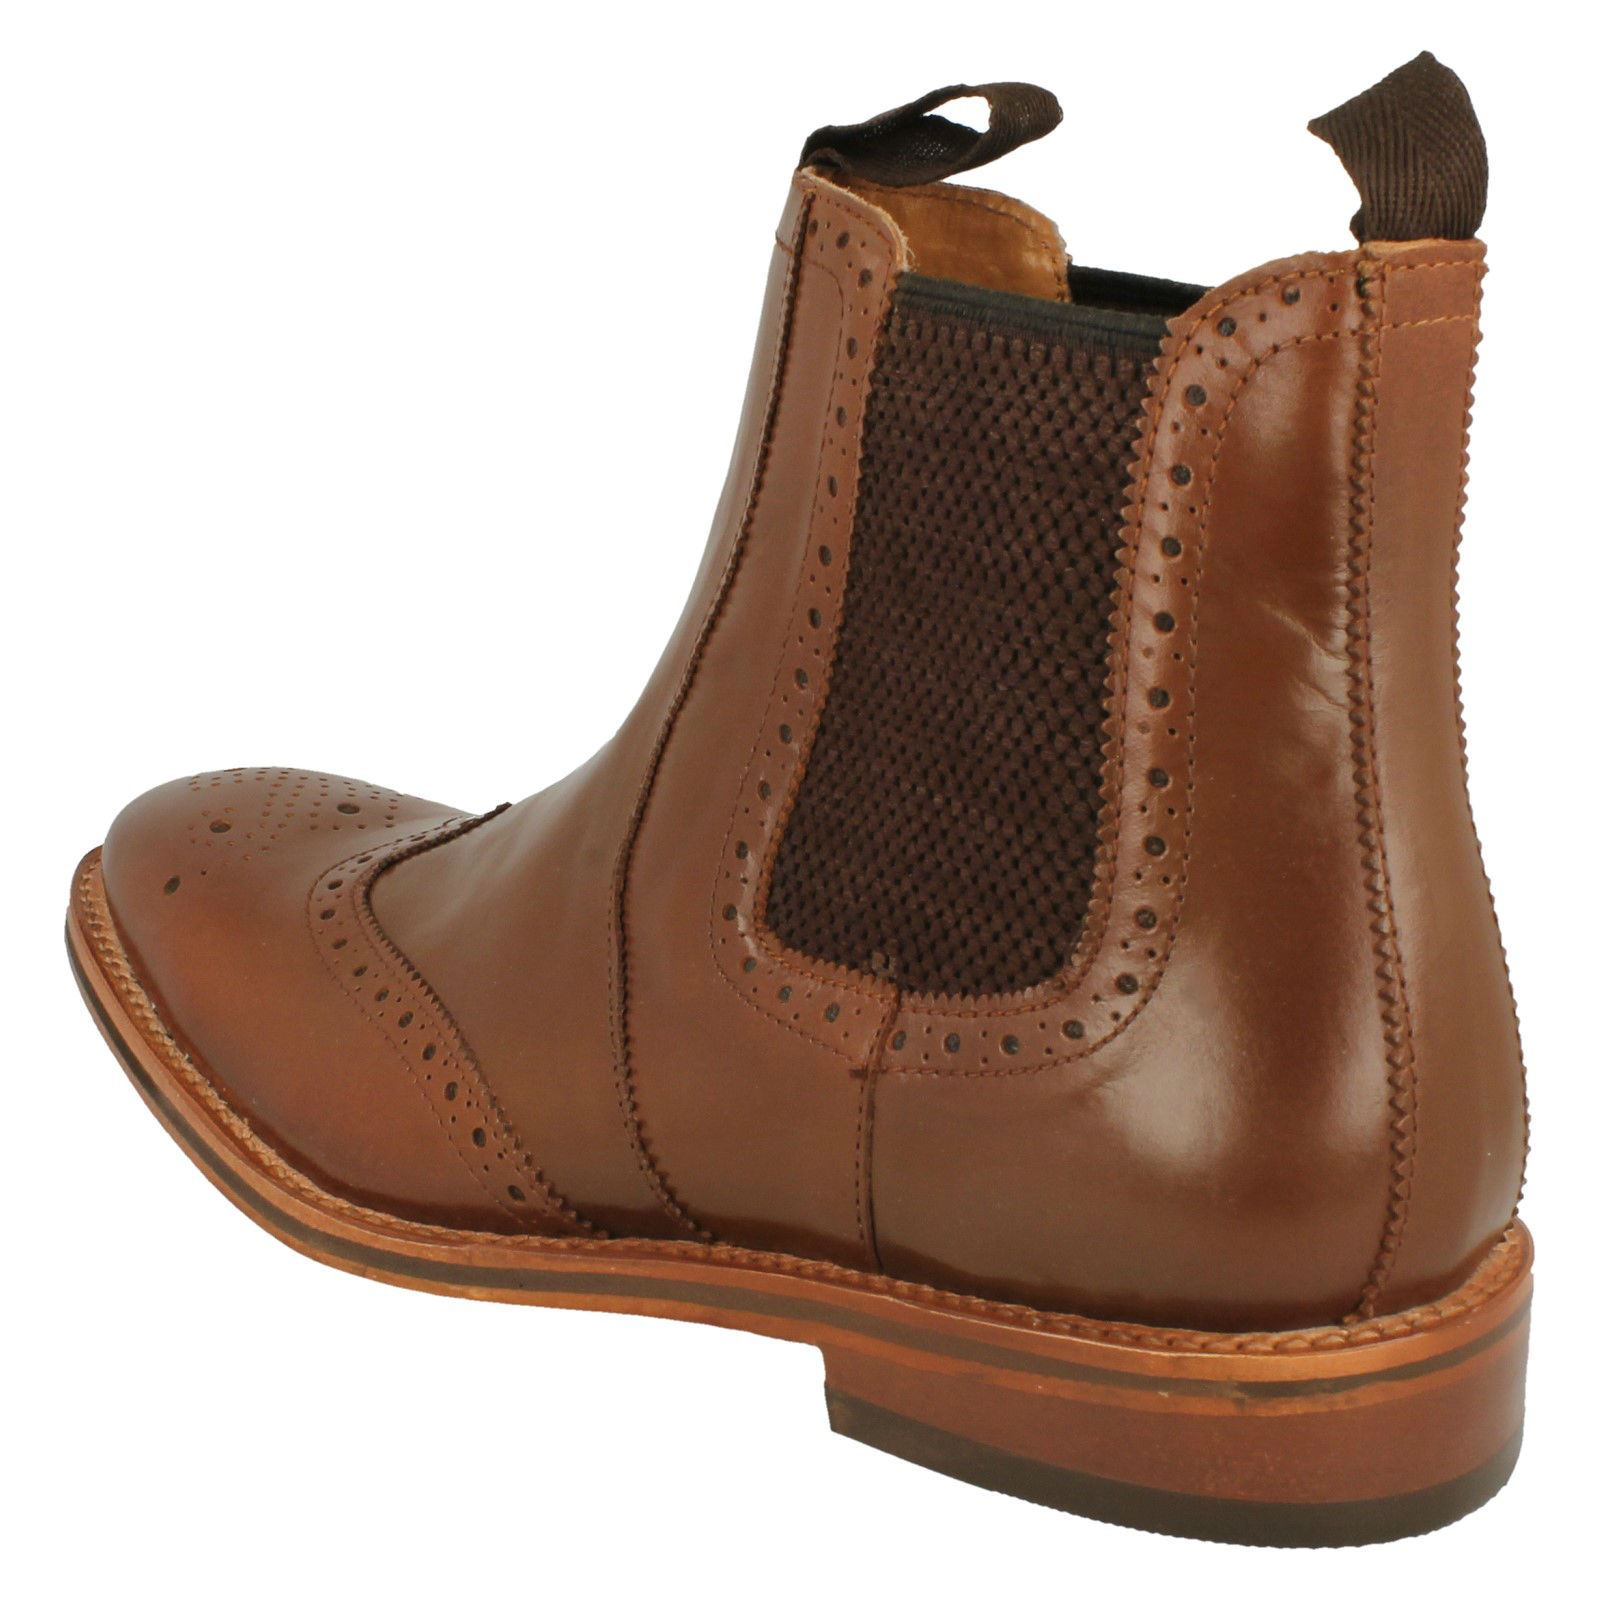 Mens-Catesby-Ankle-Boots-MCATESCW158T thumbnail 4